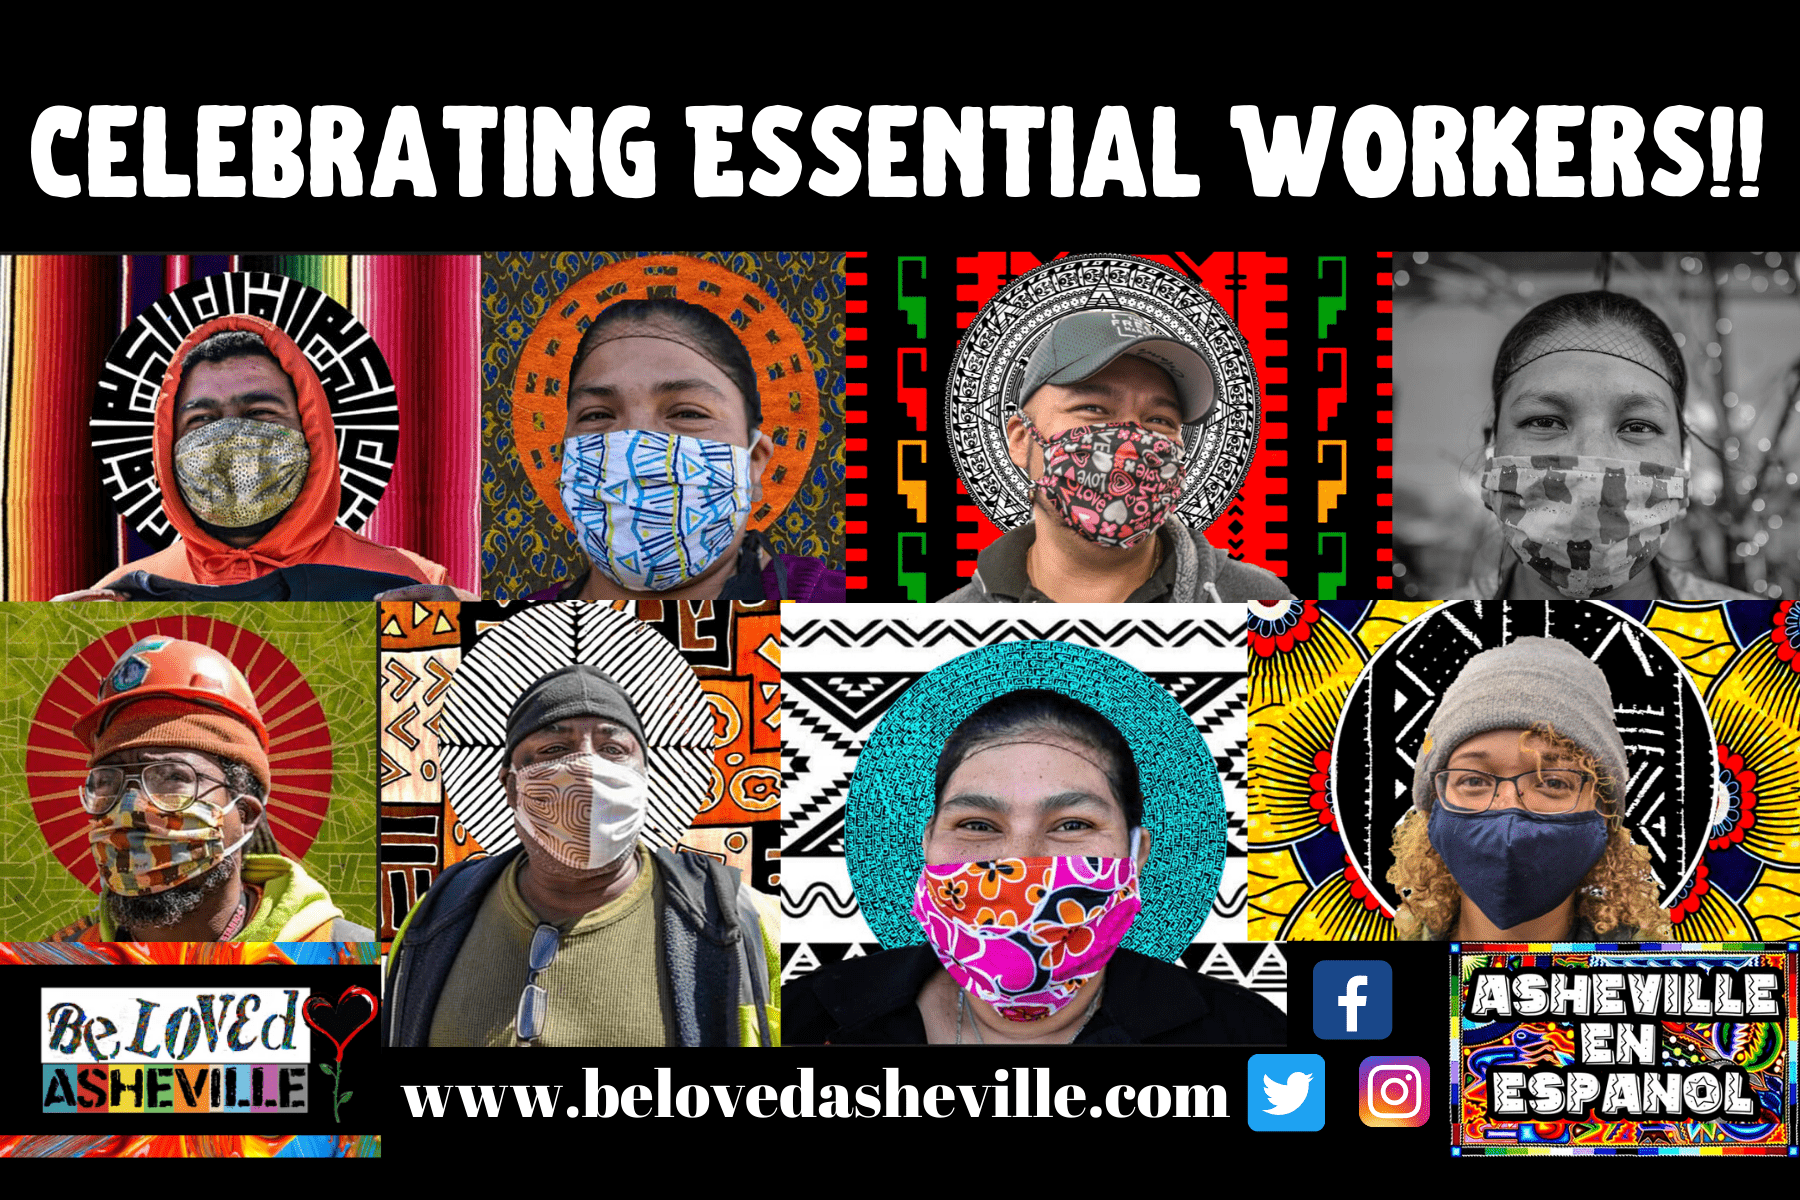 Copy of celebrating essential workers banner